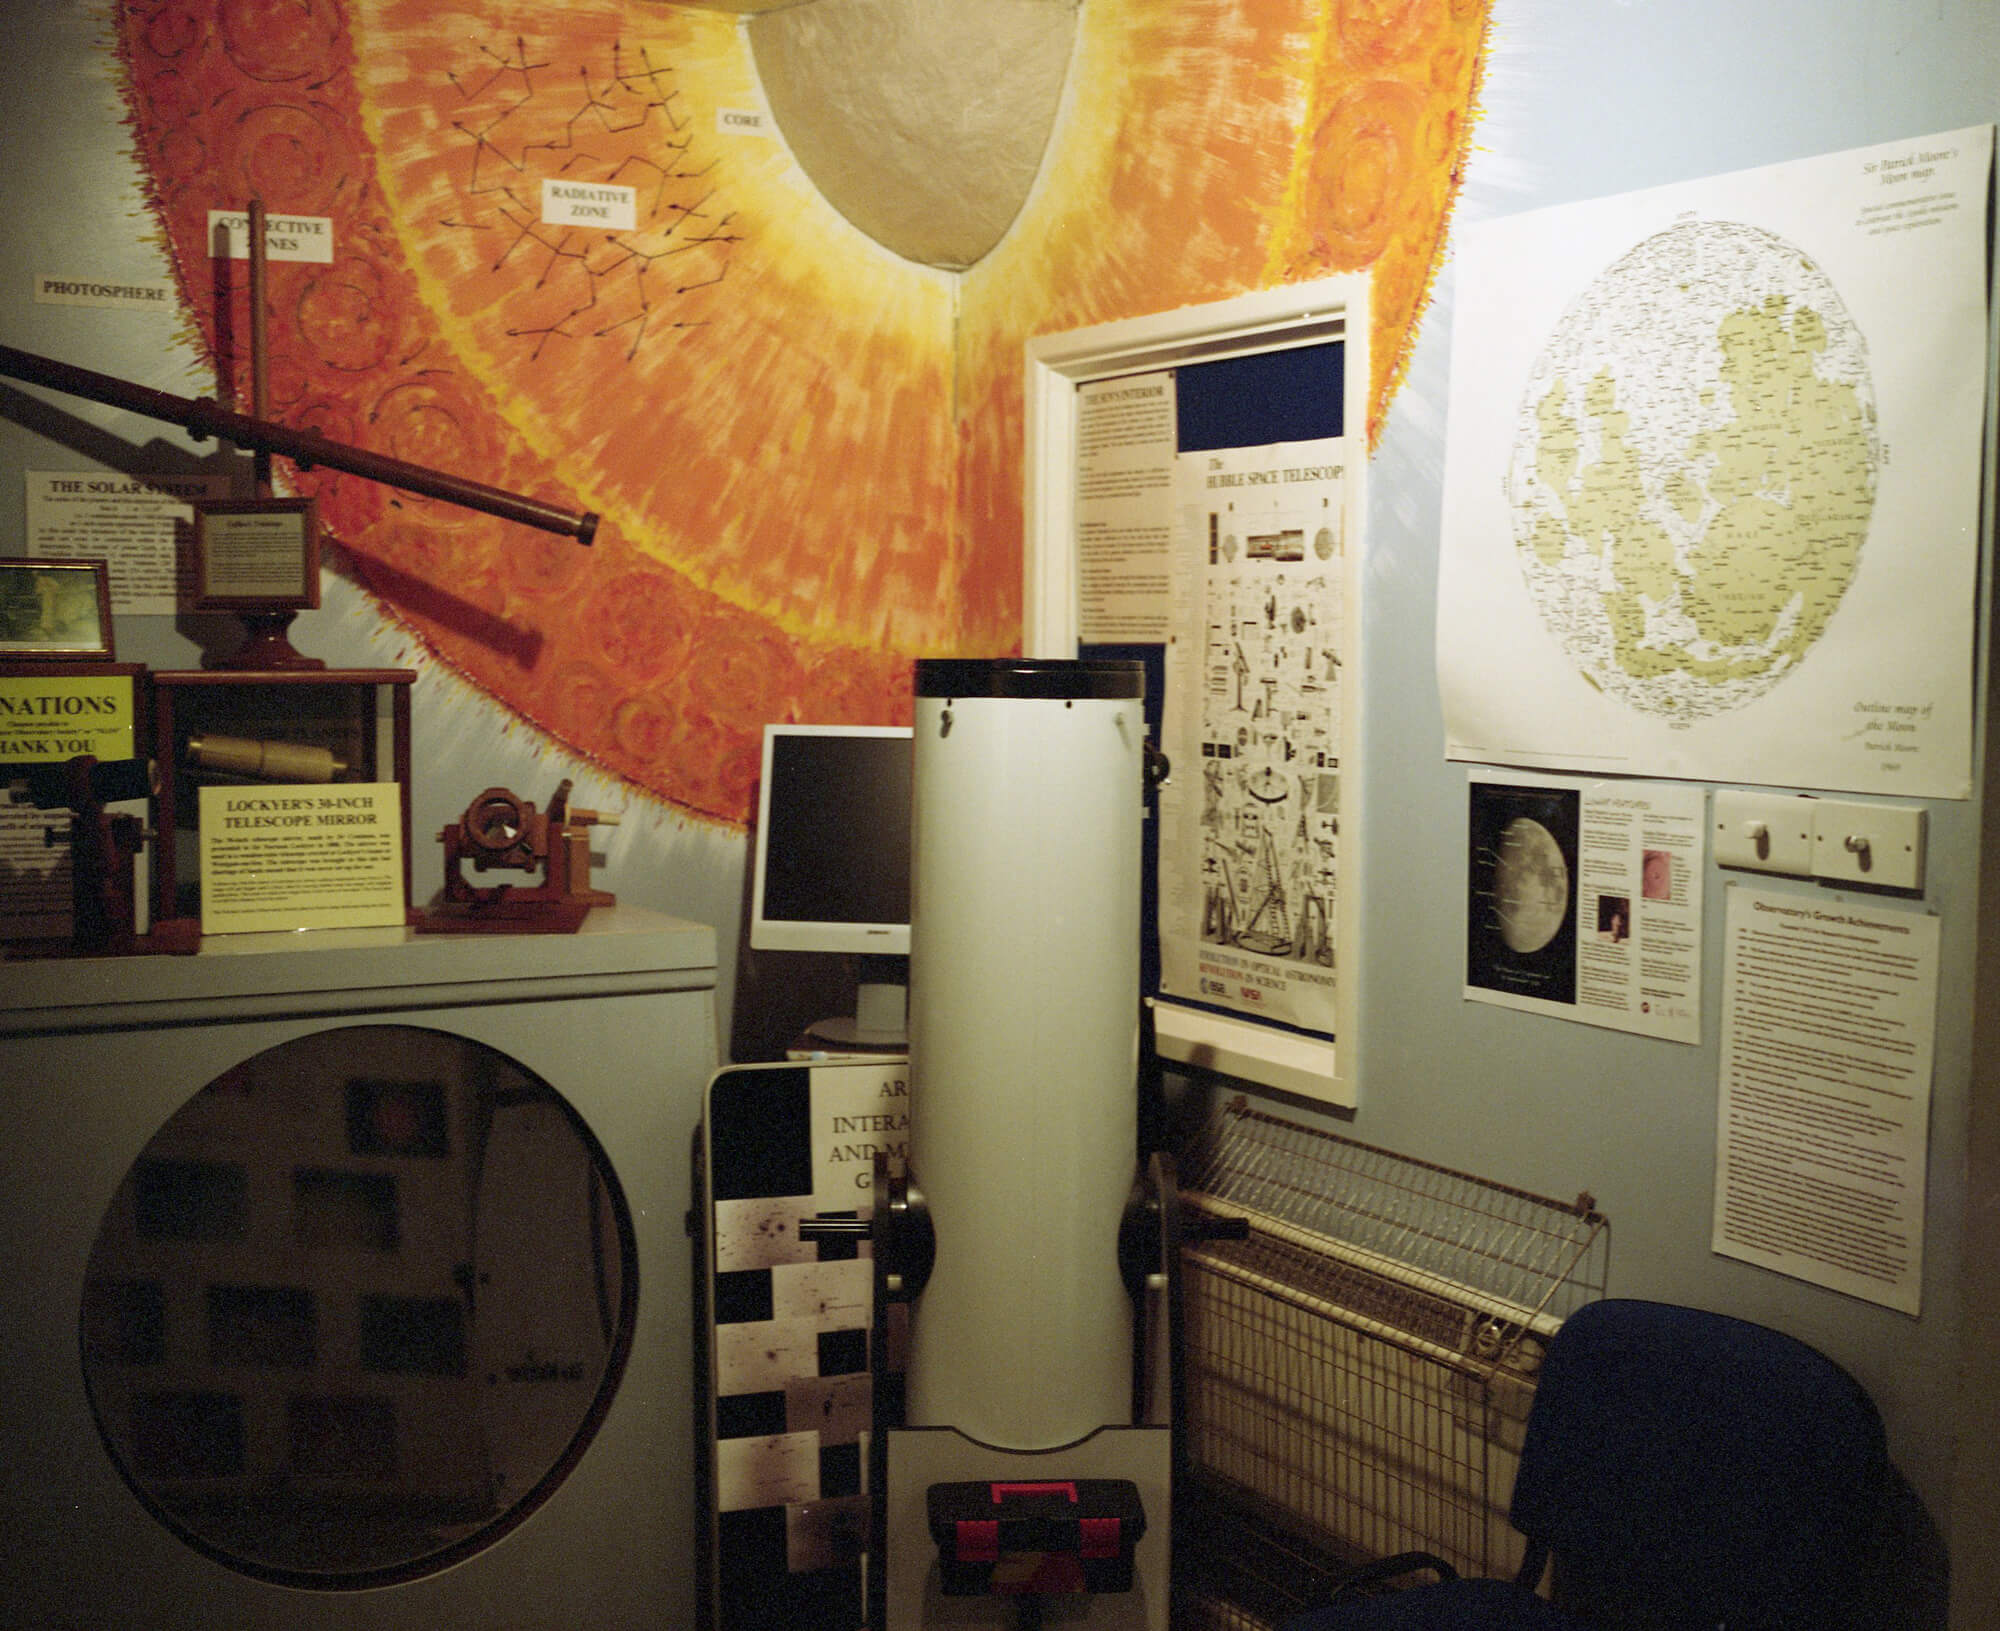 inside of observatory with maps of space and computers